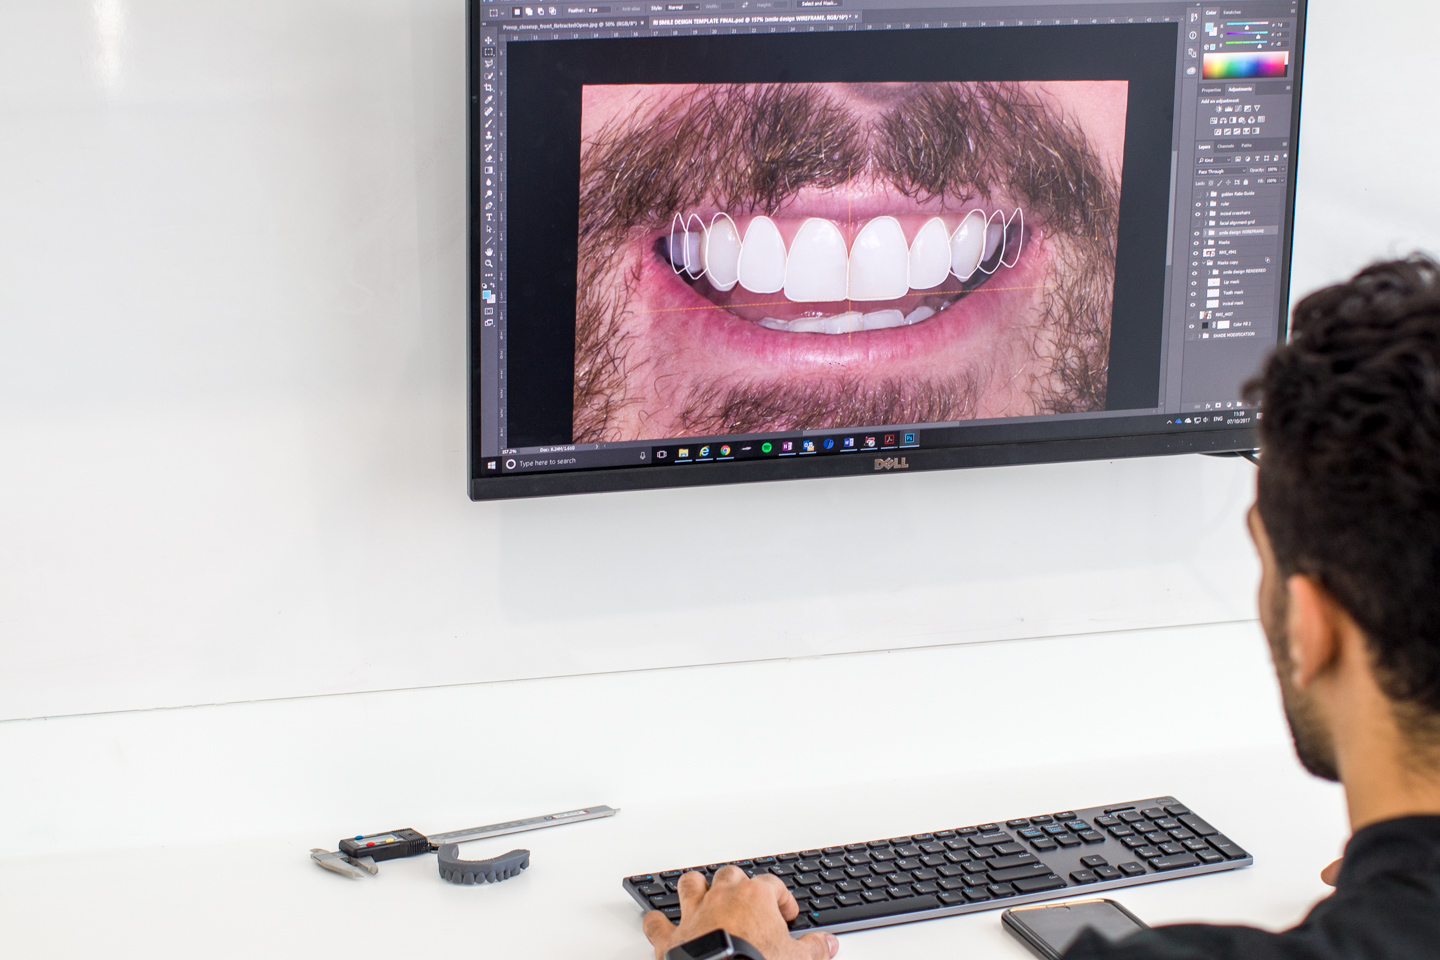 Tailored-Teeth-Dentist-in-Burwood-Sydney-digital-smile-creation